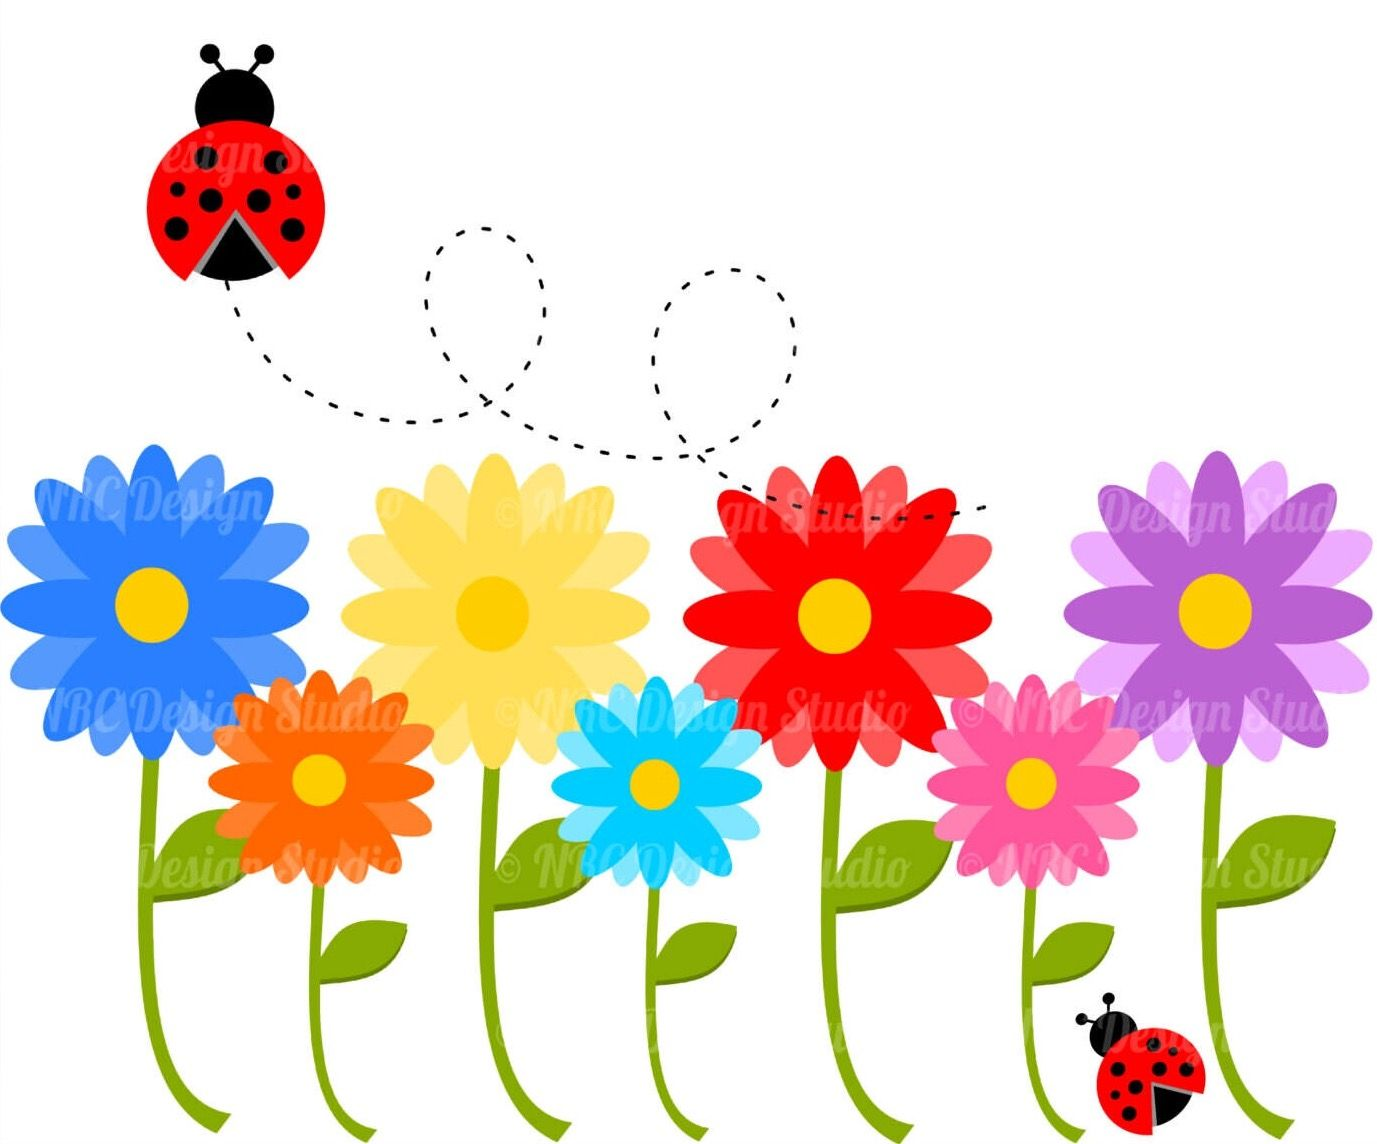 Pin by huviline on. Daisy clipart springtime flower